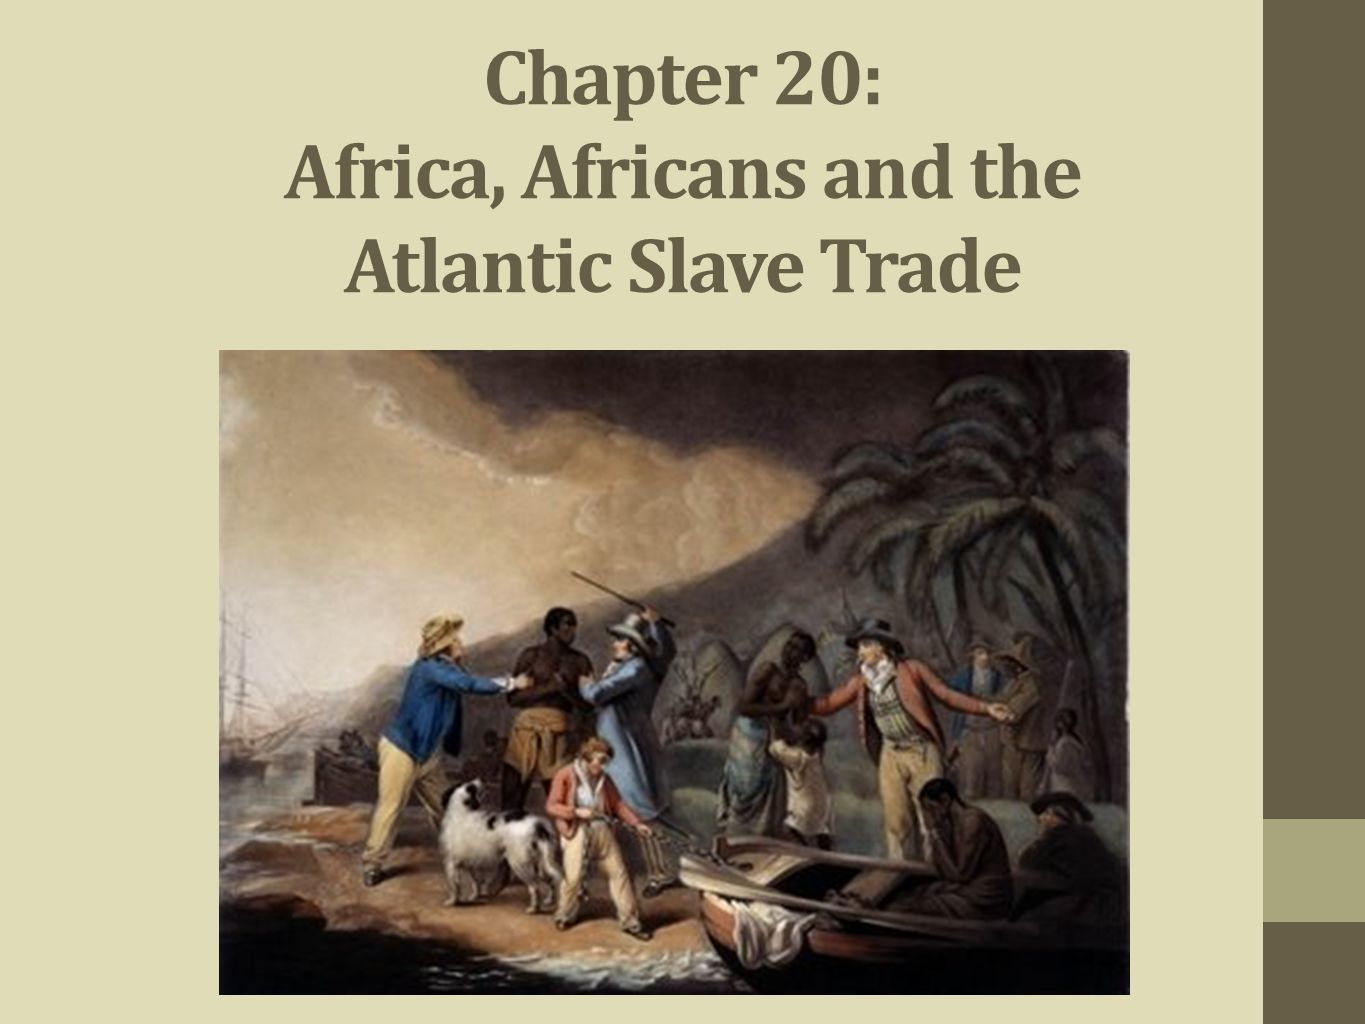 impact of slave trade on africa and africans history essay This essay explores the creation of an atlantic economy based on the slave trade, its effects on african trade with africa and between africa and the.